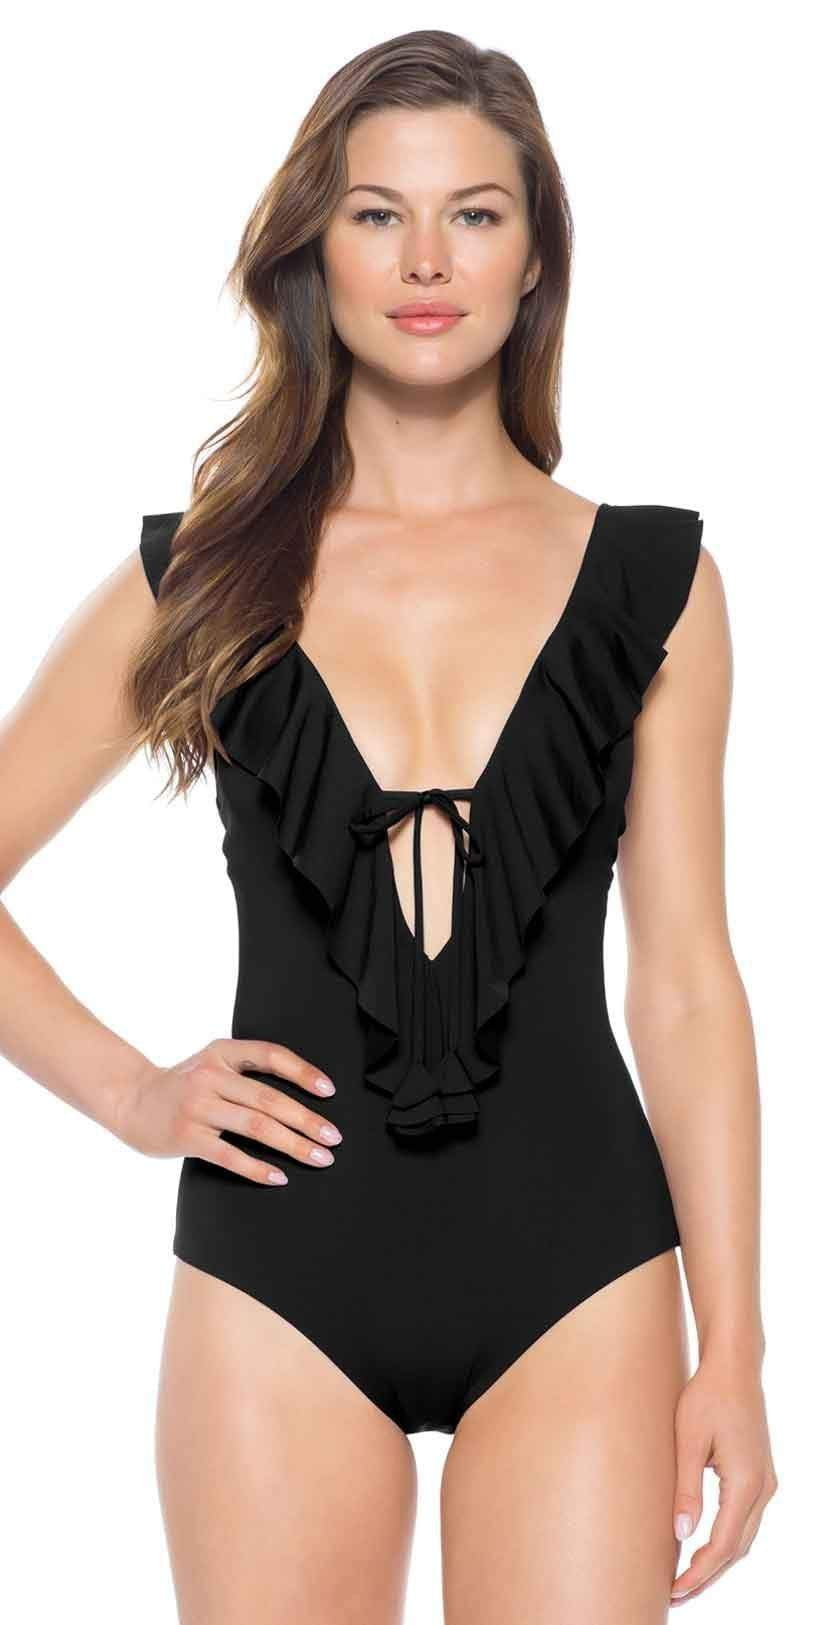 Becca Socialite Ruffle One Piece Swimsuit 191097 BLK: